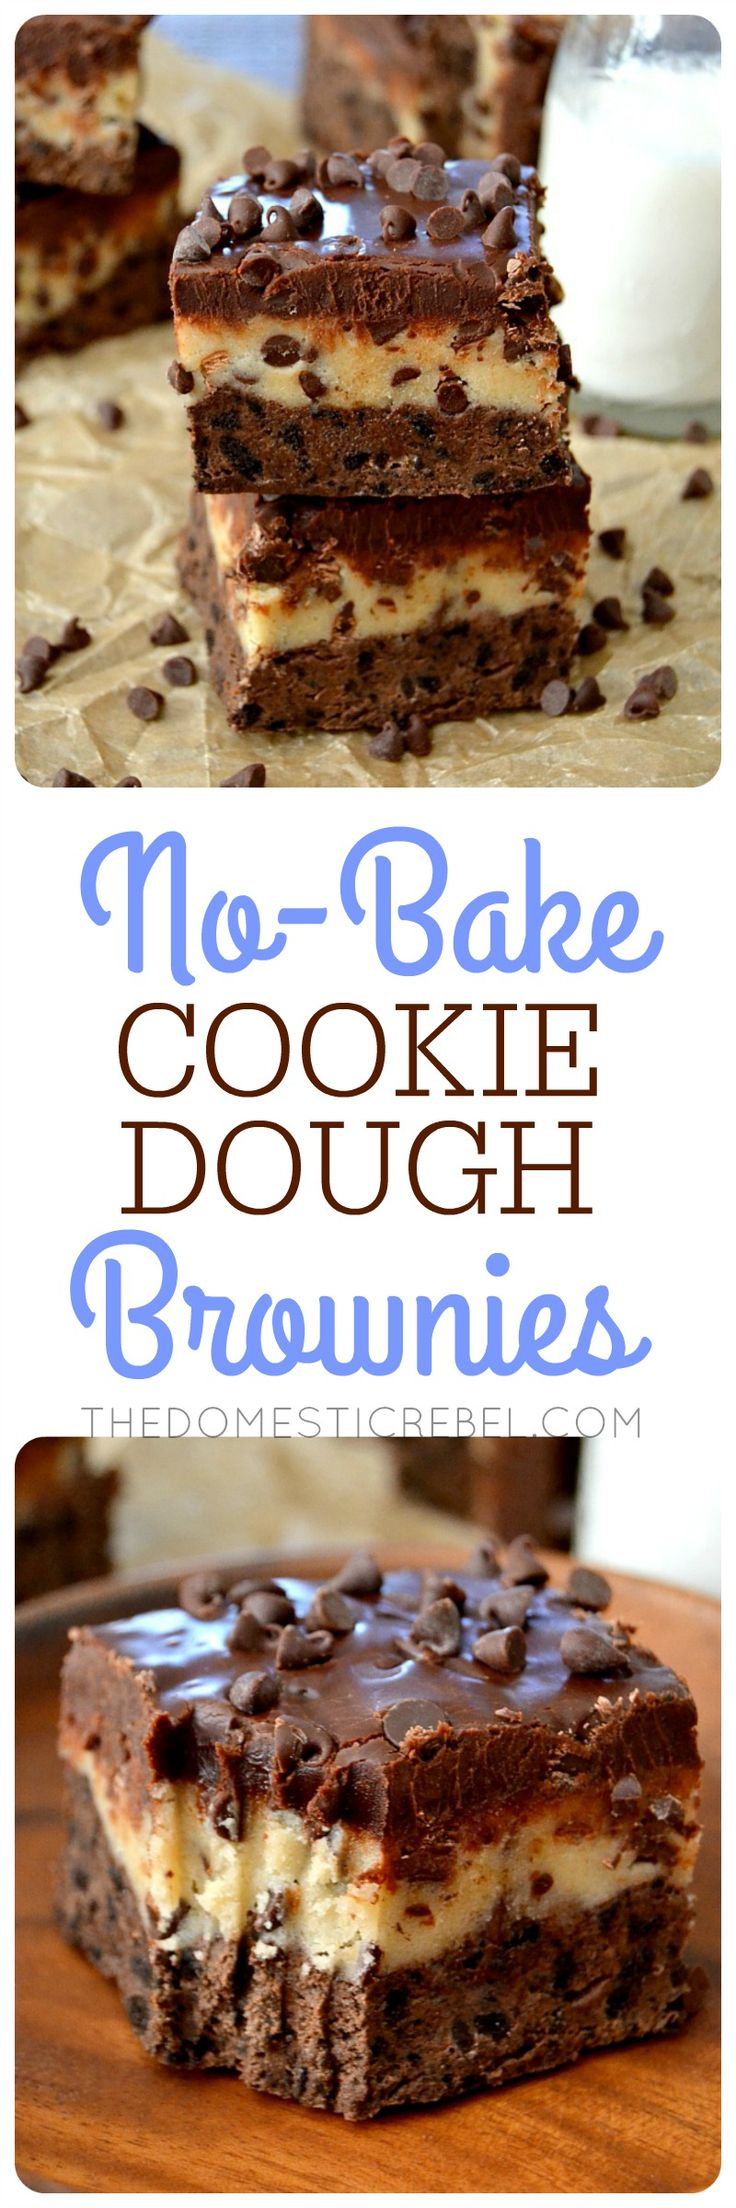 These No Bake Cookie Dough Brownies are a miracle dessert! Fudgy brownies, egg-free cookie dough, and a rich chocolate ganache - all entirely NO BAKE! Easy, impressive and great to make with kids!